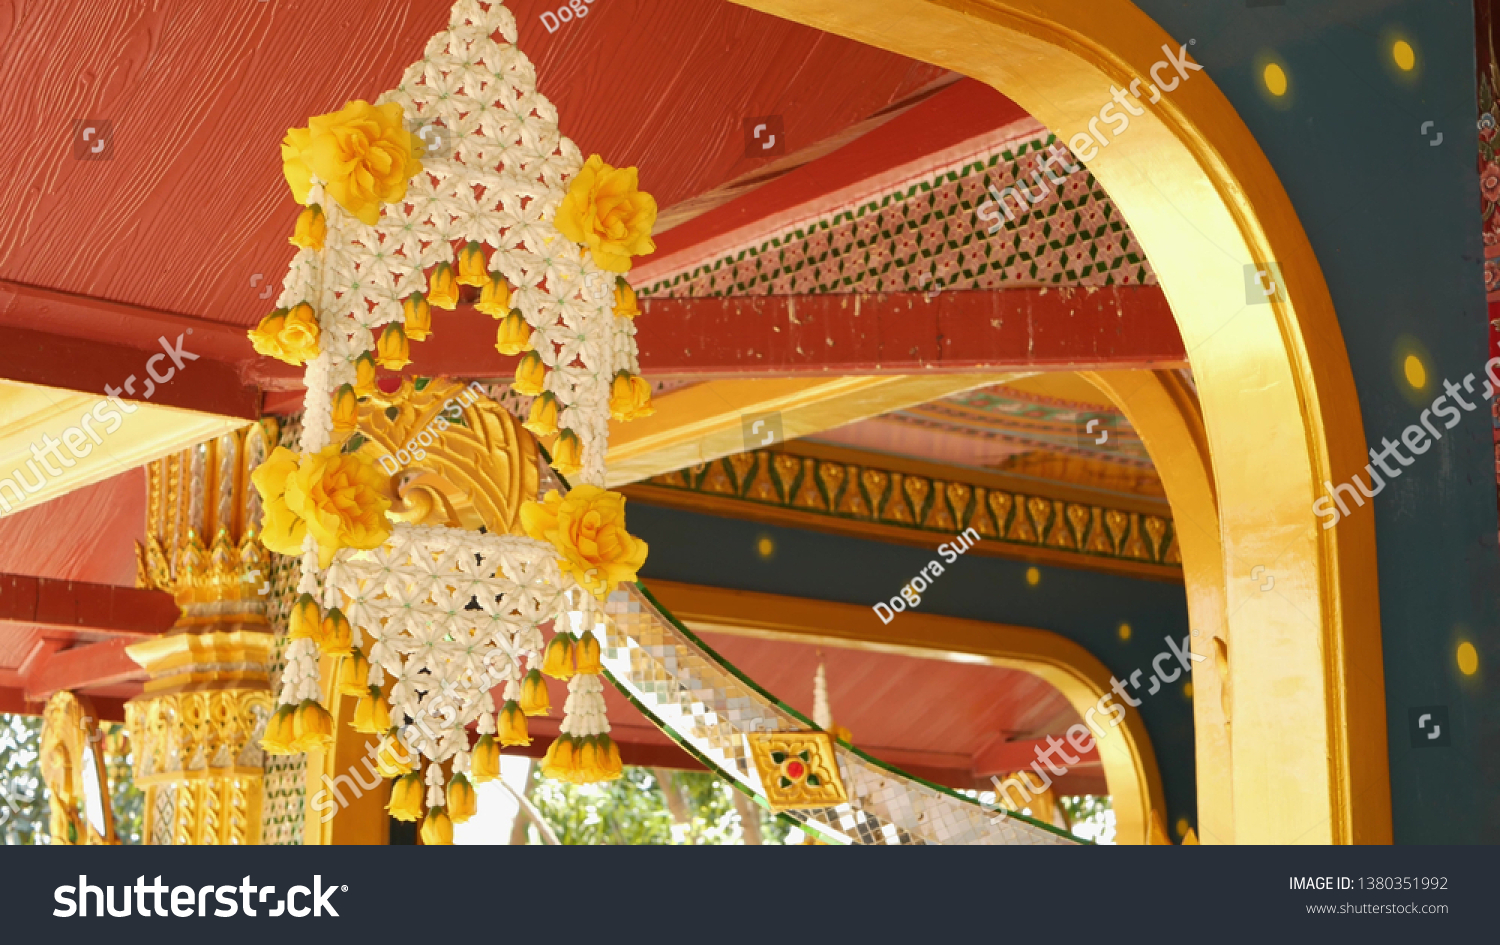 Floral interior decorations of oriental building. Beautiful flower compositions hanging on ceiling of ornamental building of buddist temple on sunny day in Thailand. #1380351992